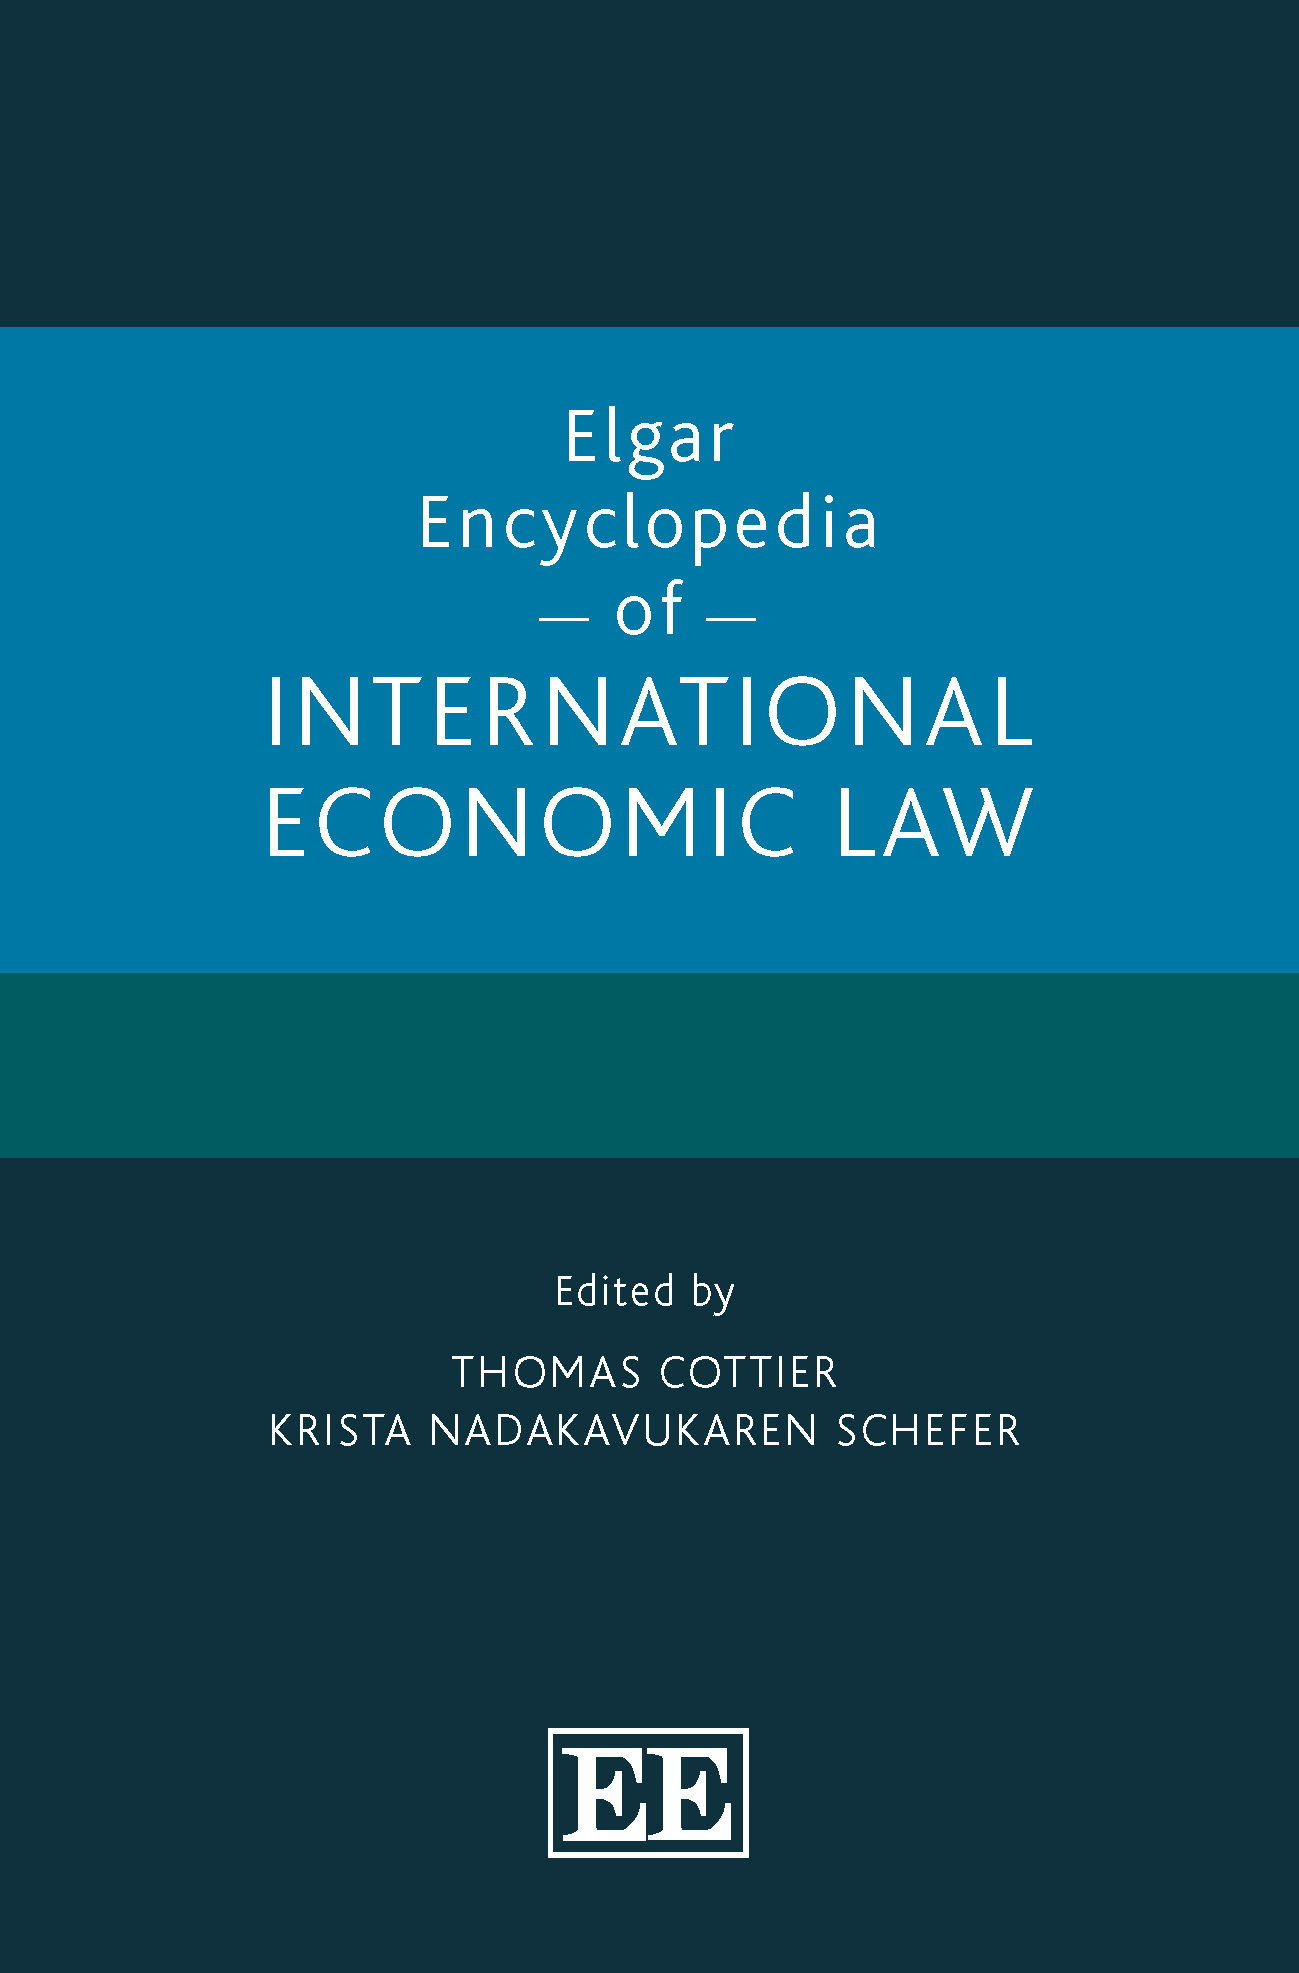 economic law The program in law and economics provides an interdisciplinary forum for scholarship in the fields of business law, and law and economics as one of the preeminent institutions for the study of these fields on both the undergraduate and graduate levels, berkeley's program is notable both for the depth of its faculty and the breadth of [.